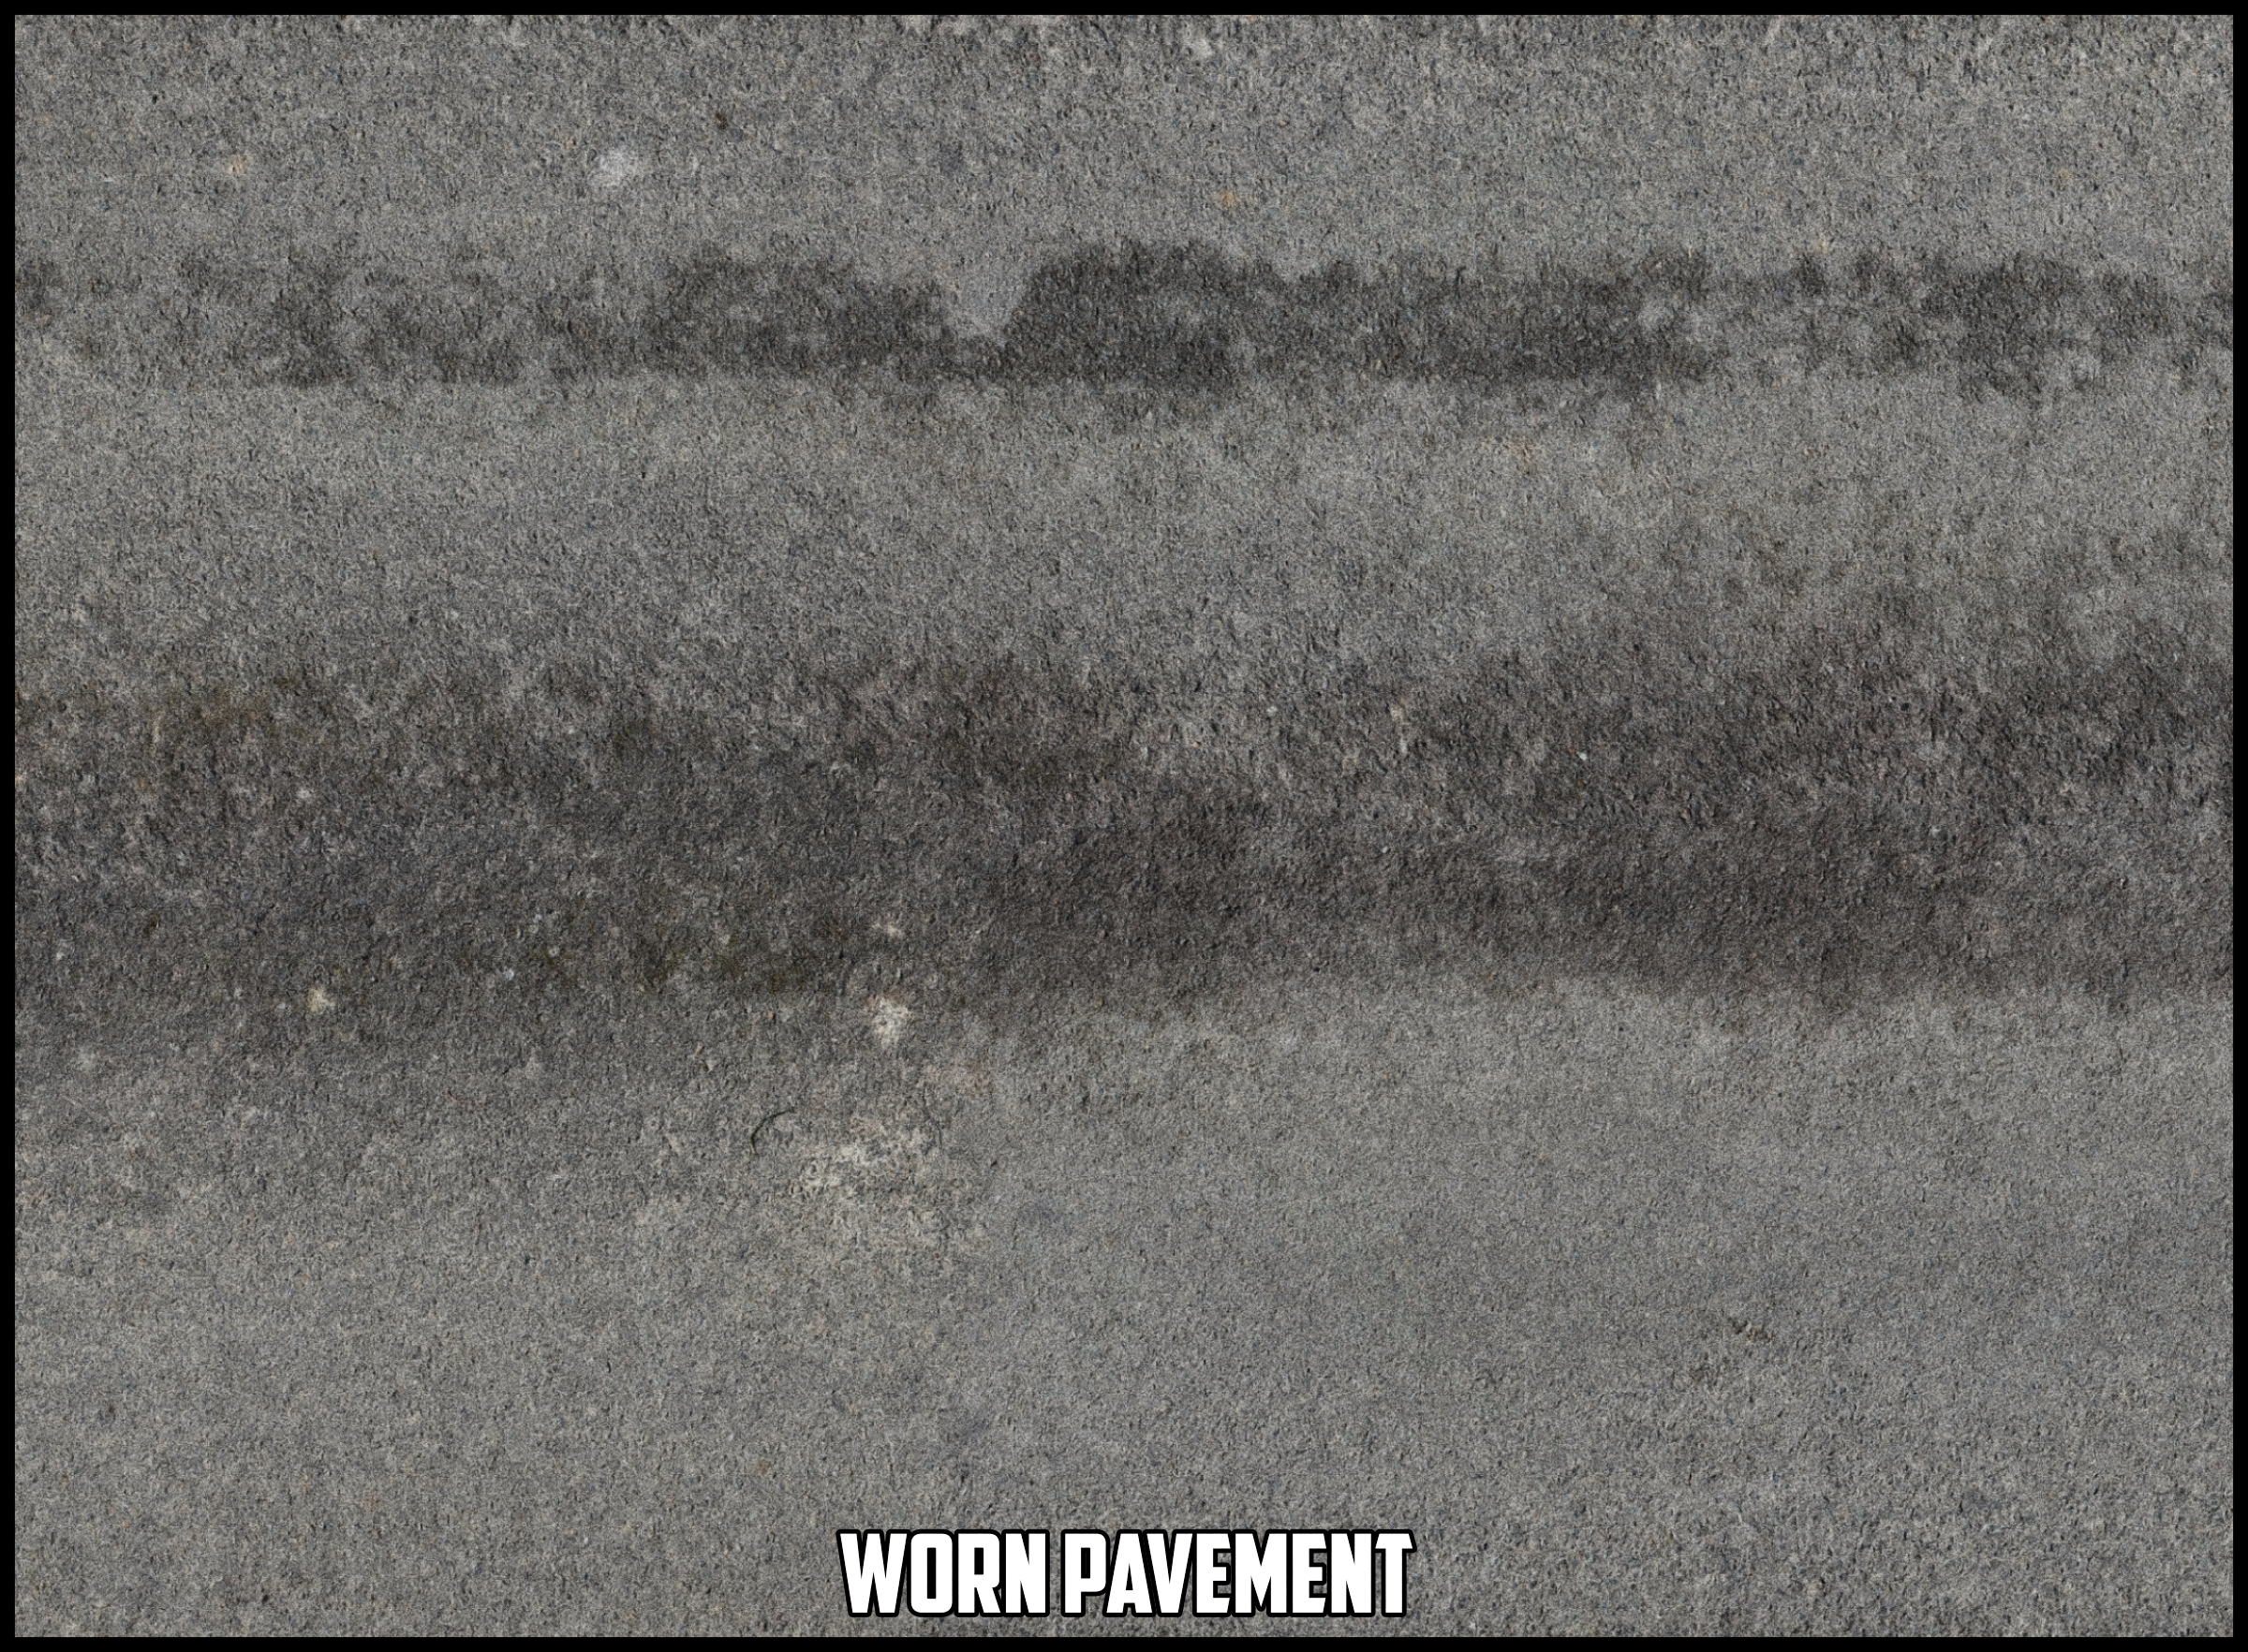 texture-worn-pavement-example.png